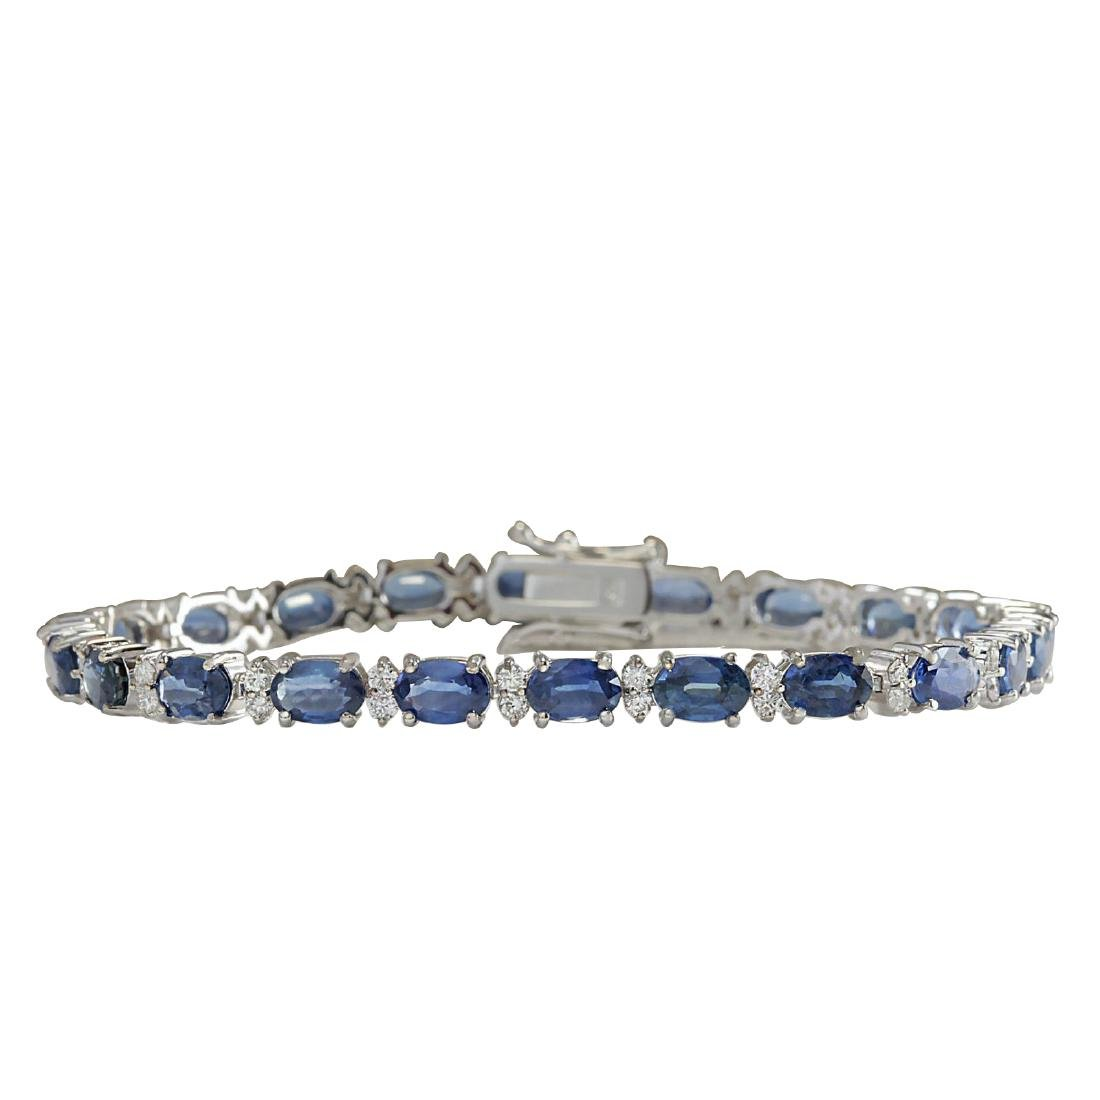 13.49CTW Natural Sapphire And Diamond Bracelet In 18K